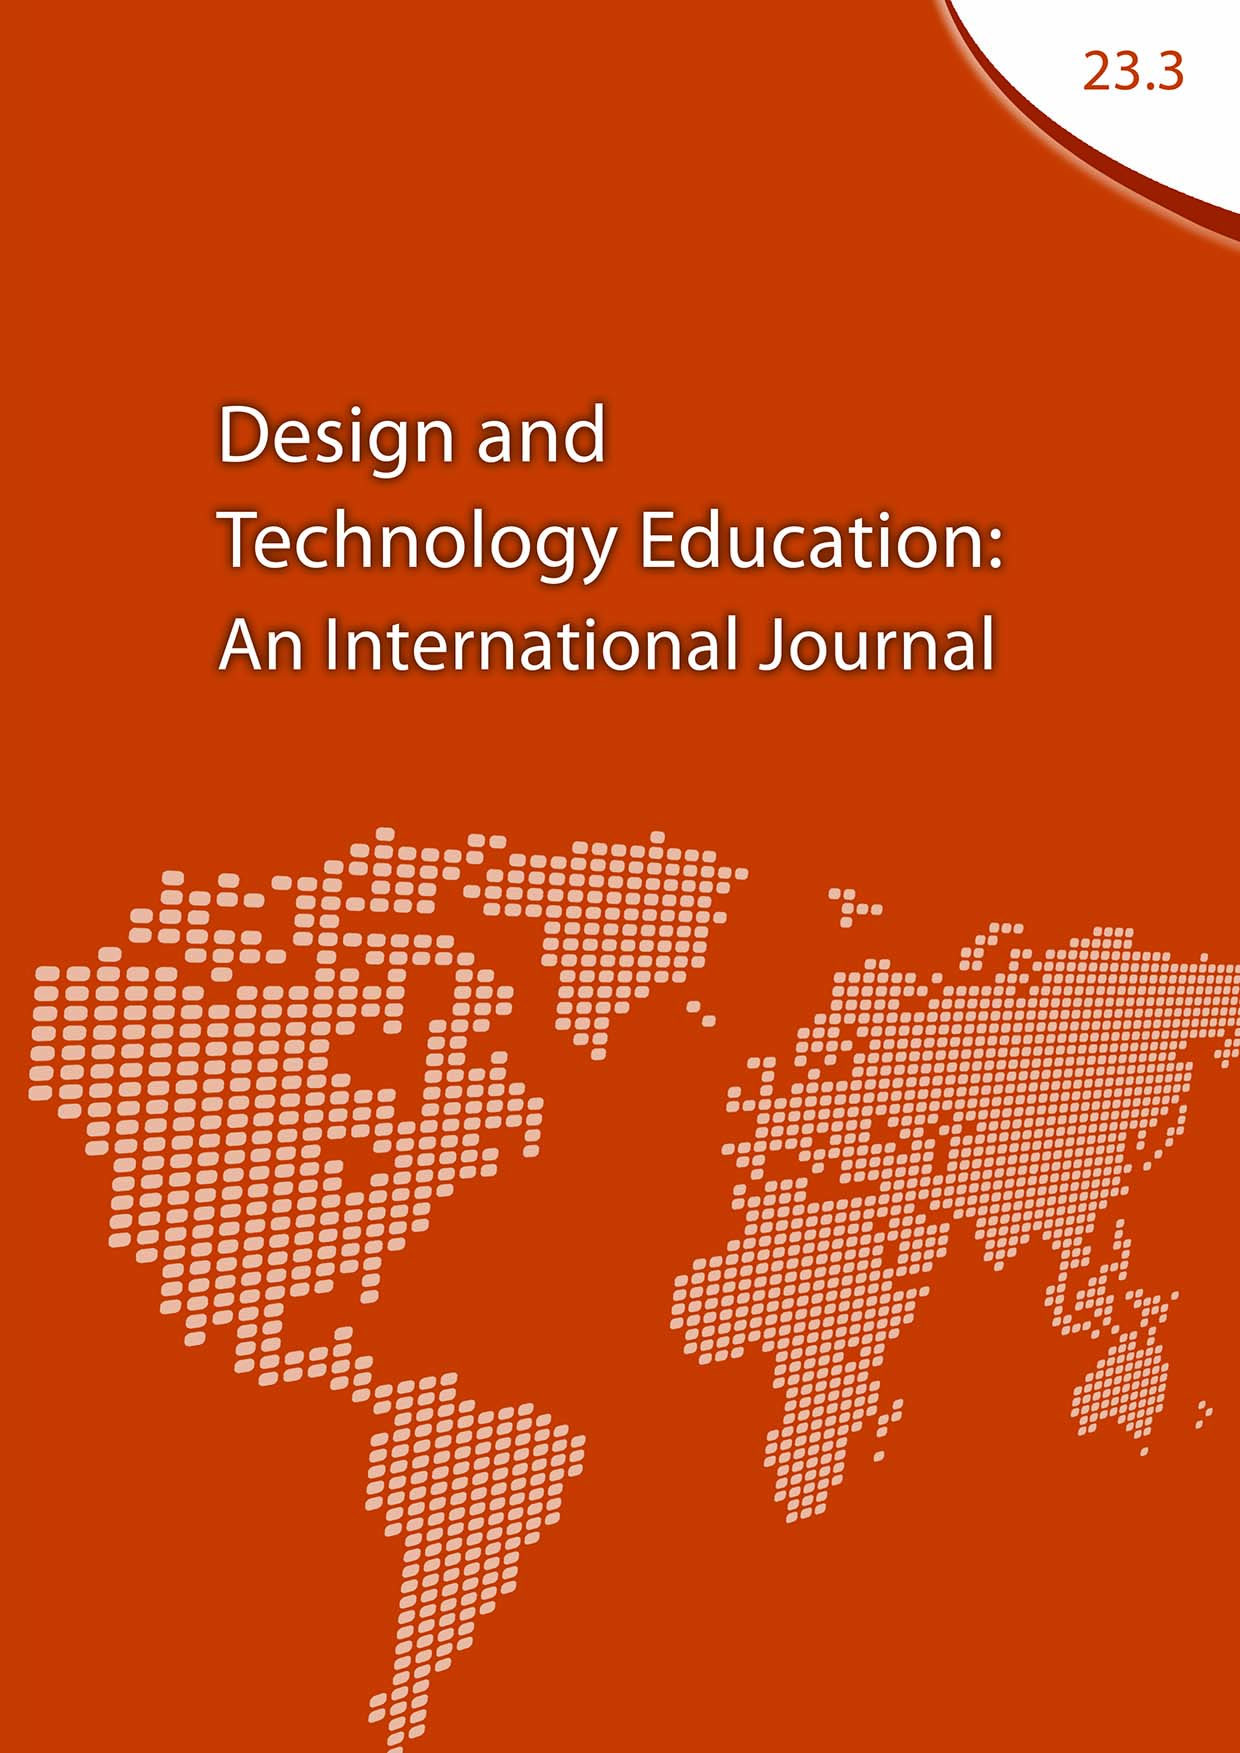 Innovating Industrial Design Curriculum in a Knowledge-Based